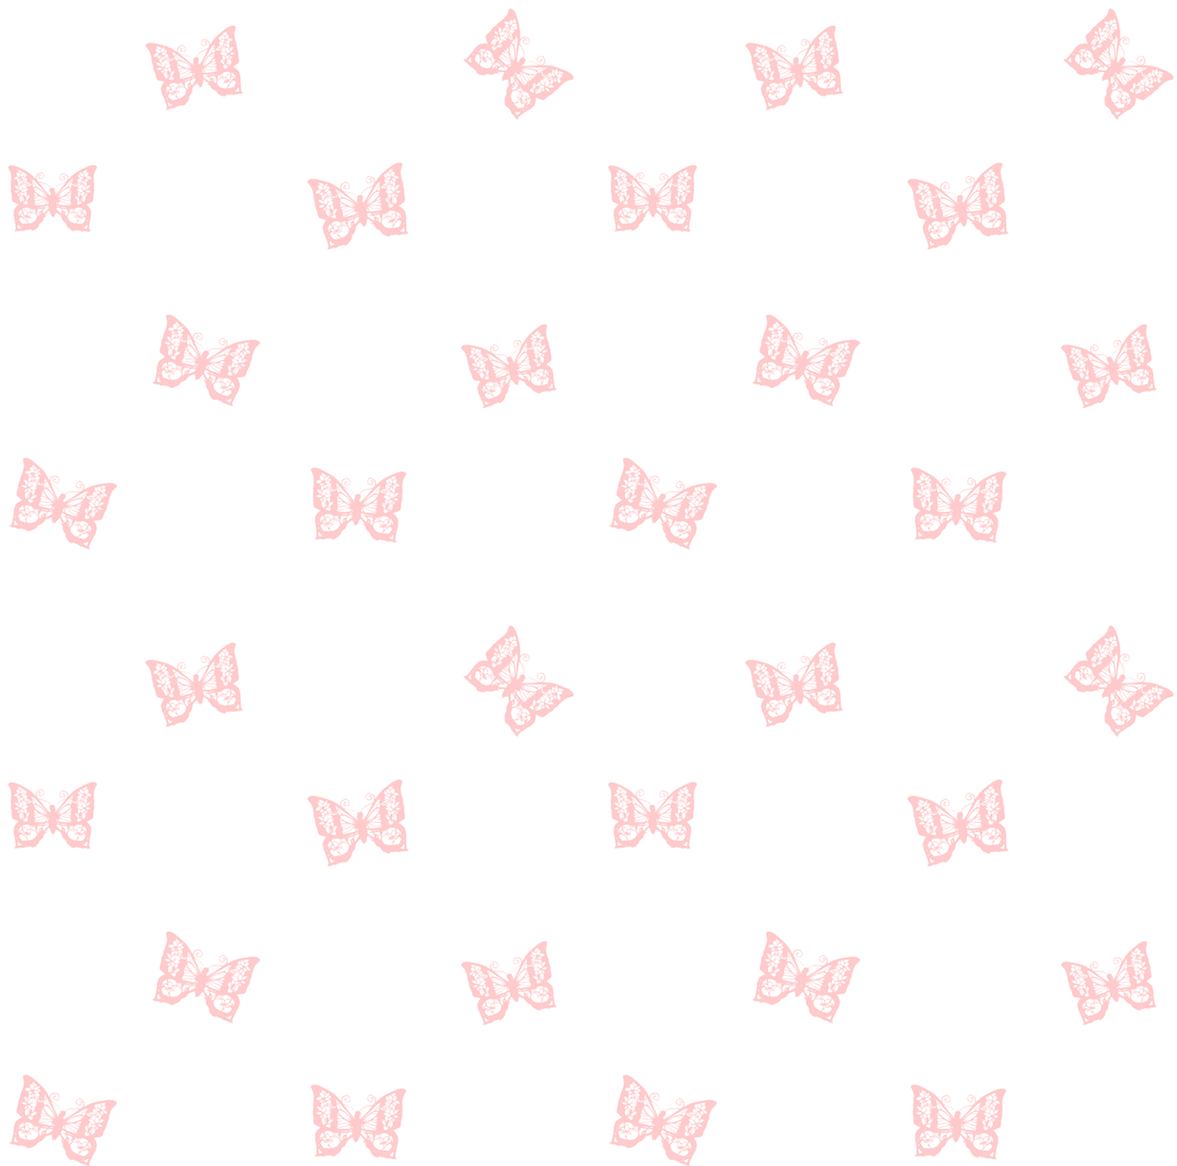 ButterflypaperPng  Pxeles  Digital Papers